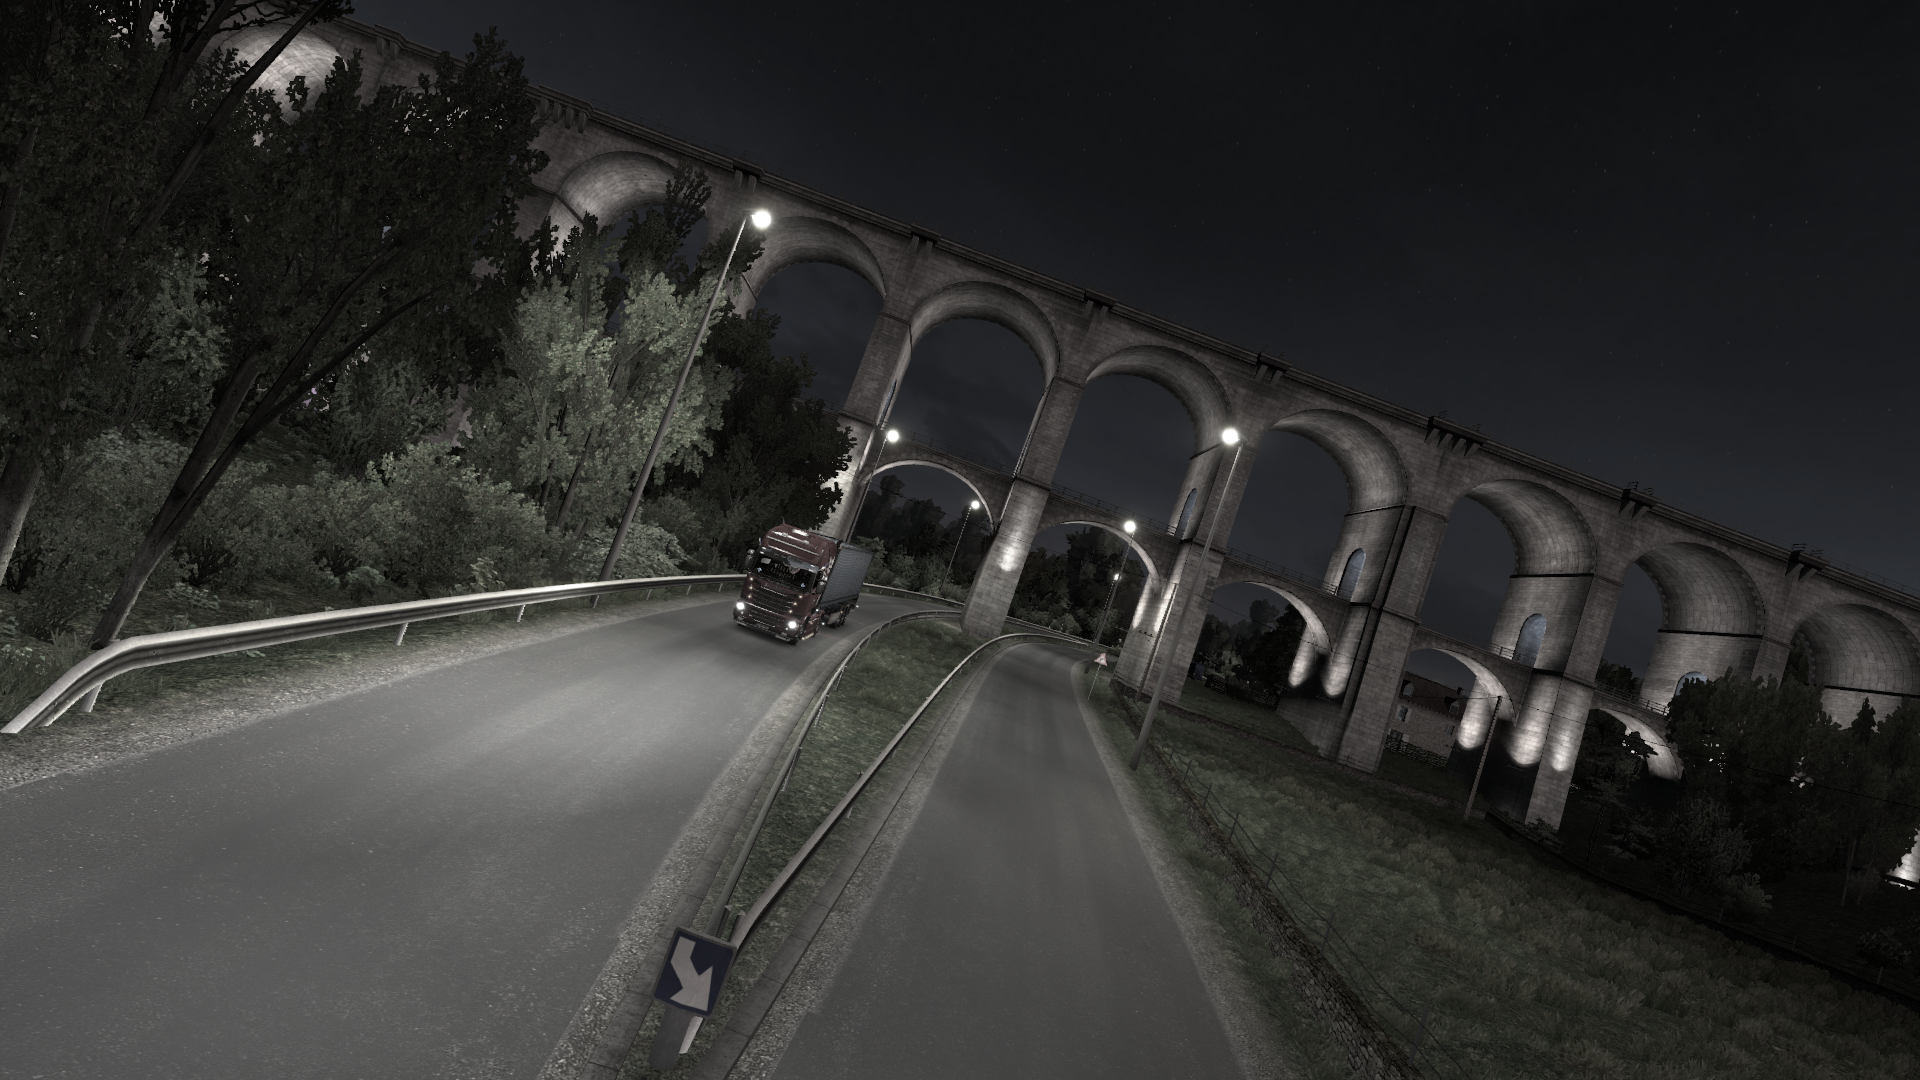 ets2_00035.png